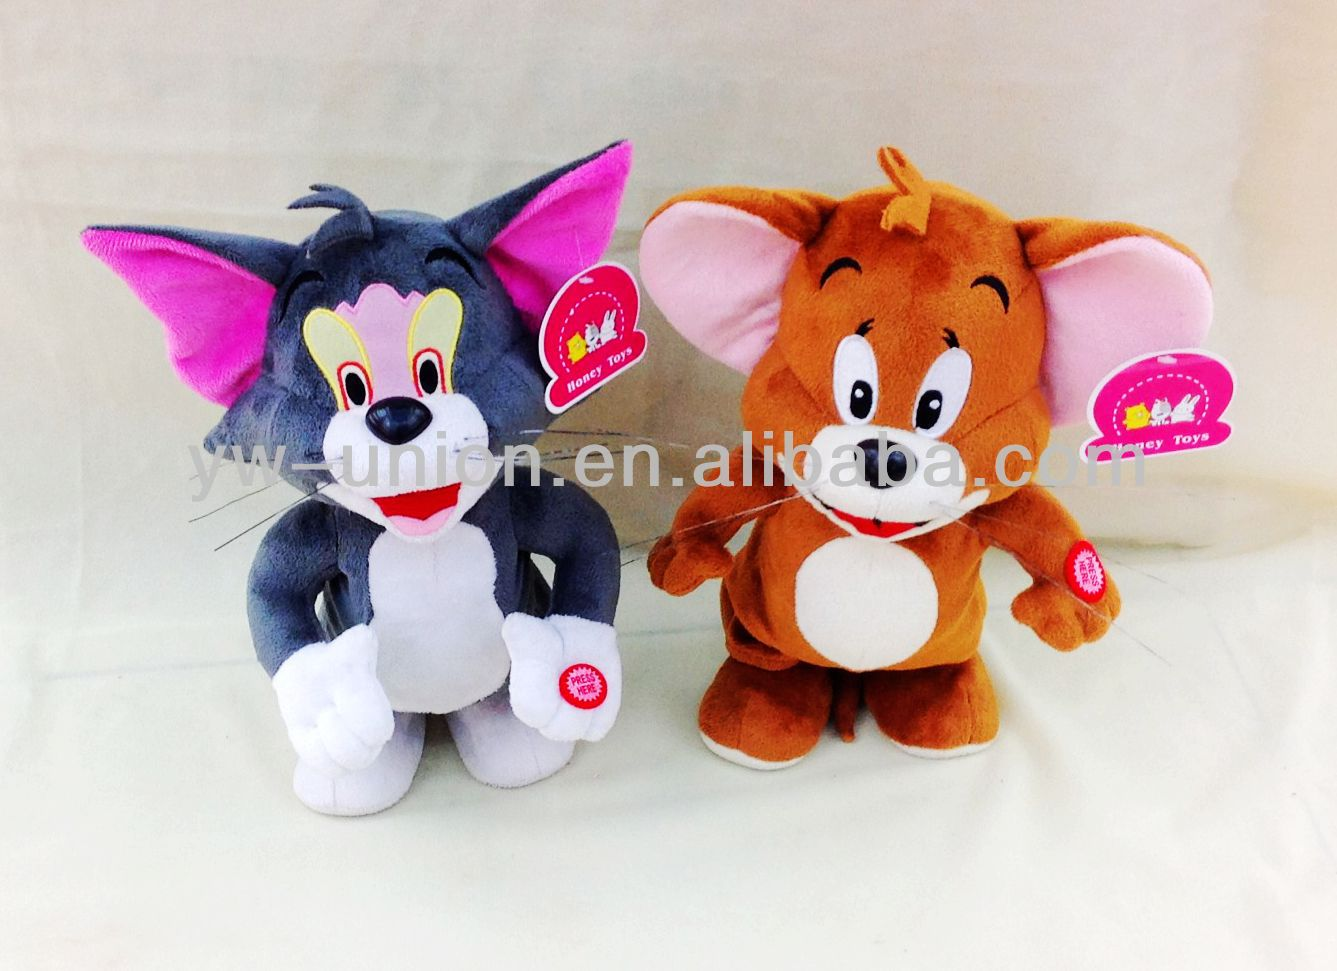 PLUSH MUSIC MOUSE AND CAT TOY